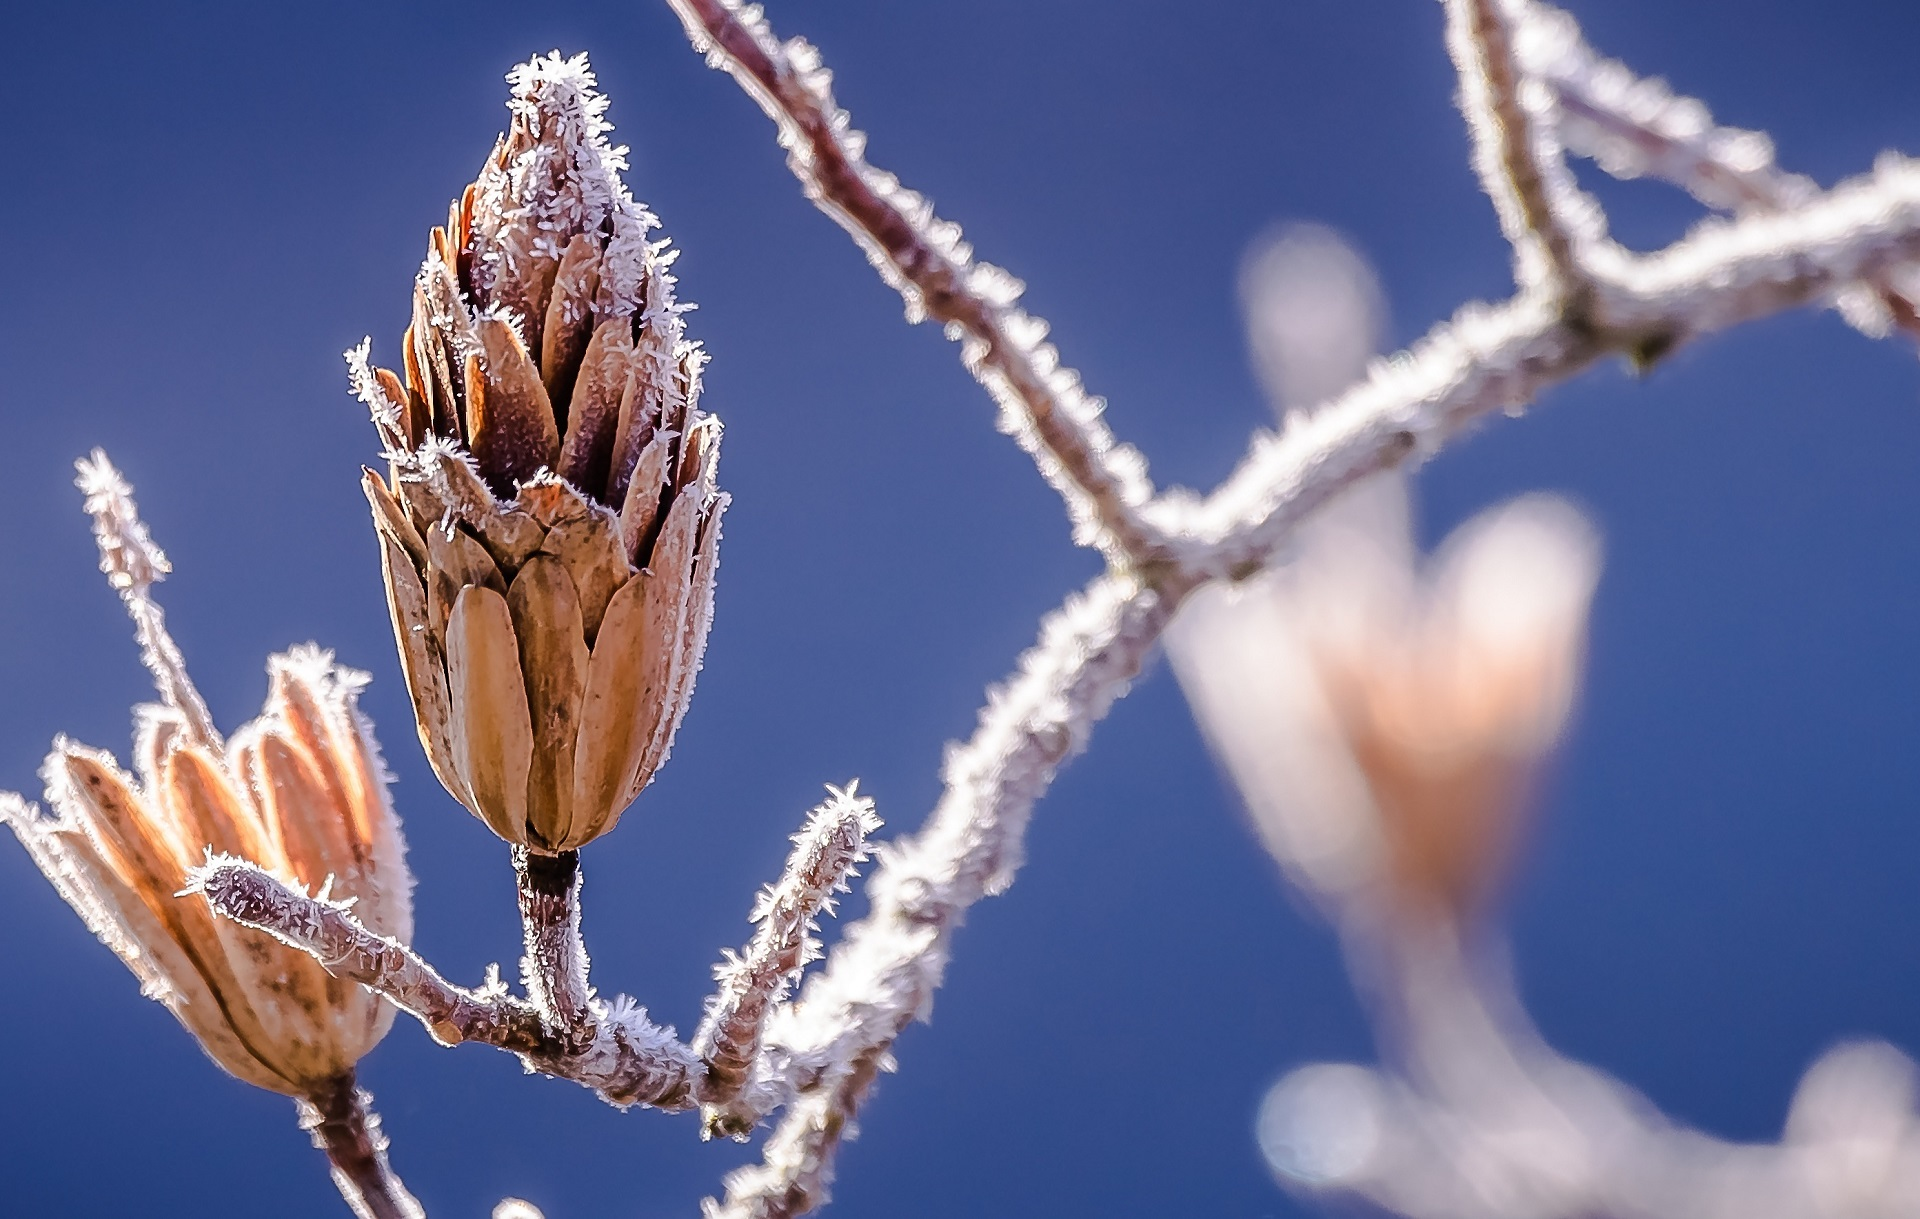 winter-nature-bud-branch-39677